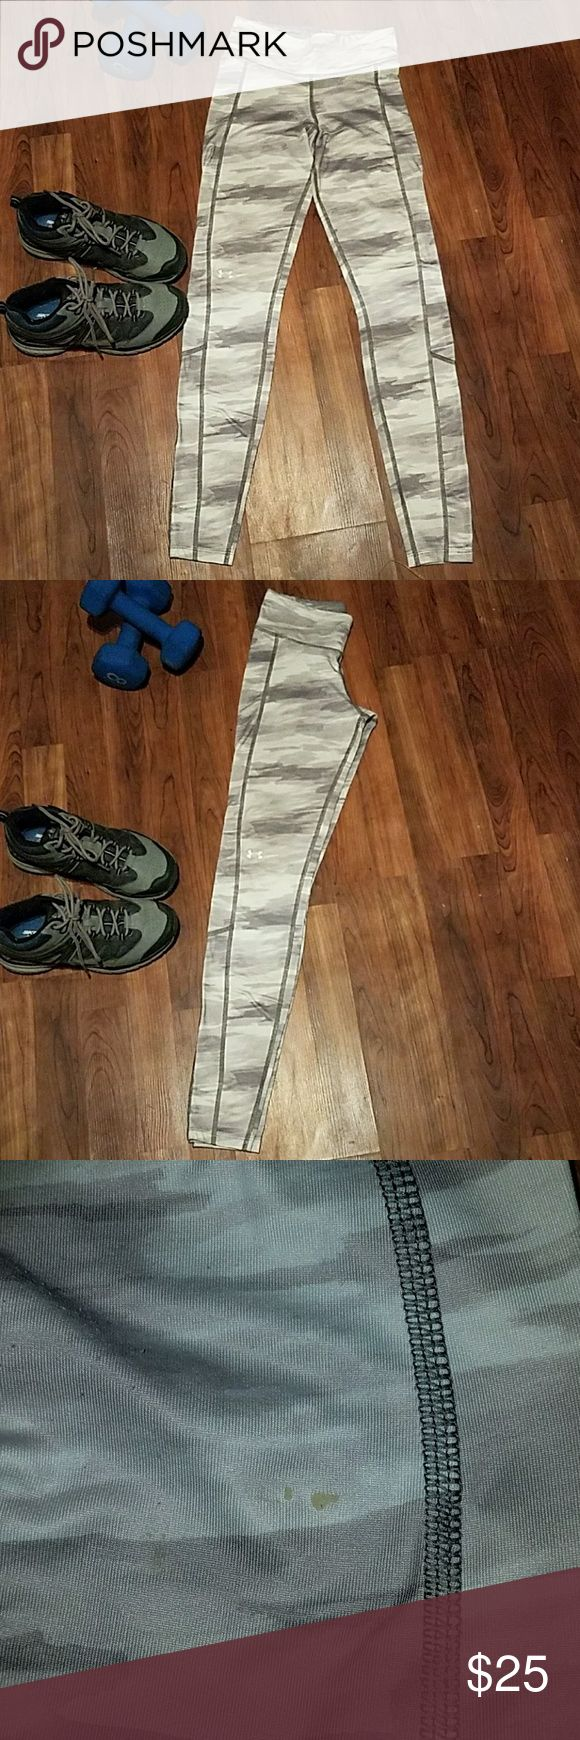 UNDER ARMER Grey Blend Skinny Yoga Pants sz Small Good Condition  No stains, no holes Cream, Light & Dark Grey  Skinny Yoga Workout leggings  (Flaw) clear glue spot on Right bottom cheek  The size of a tiny seed. ○ about this size! Under Armour Pants Skinny